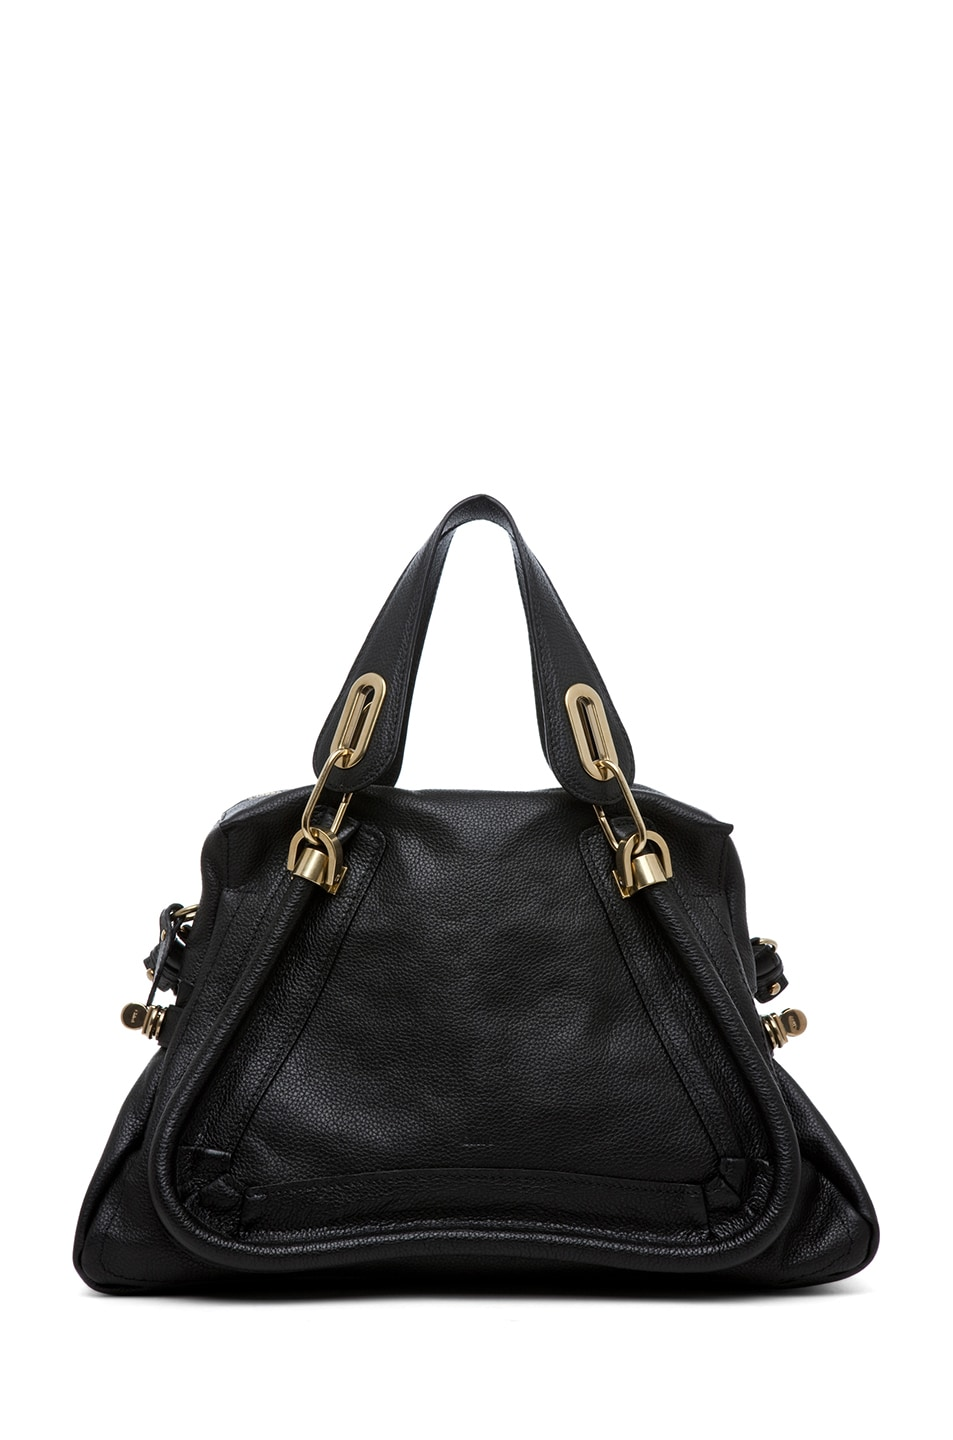 Image 1 of Chloe Paraty Medium Shoulder Bag in Black